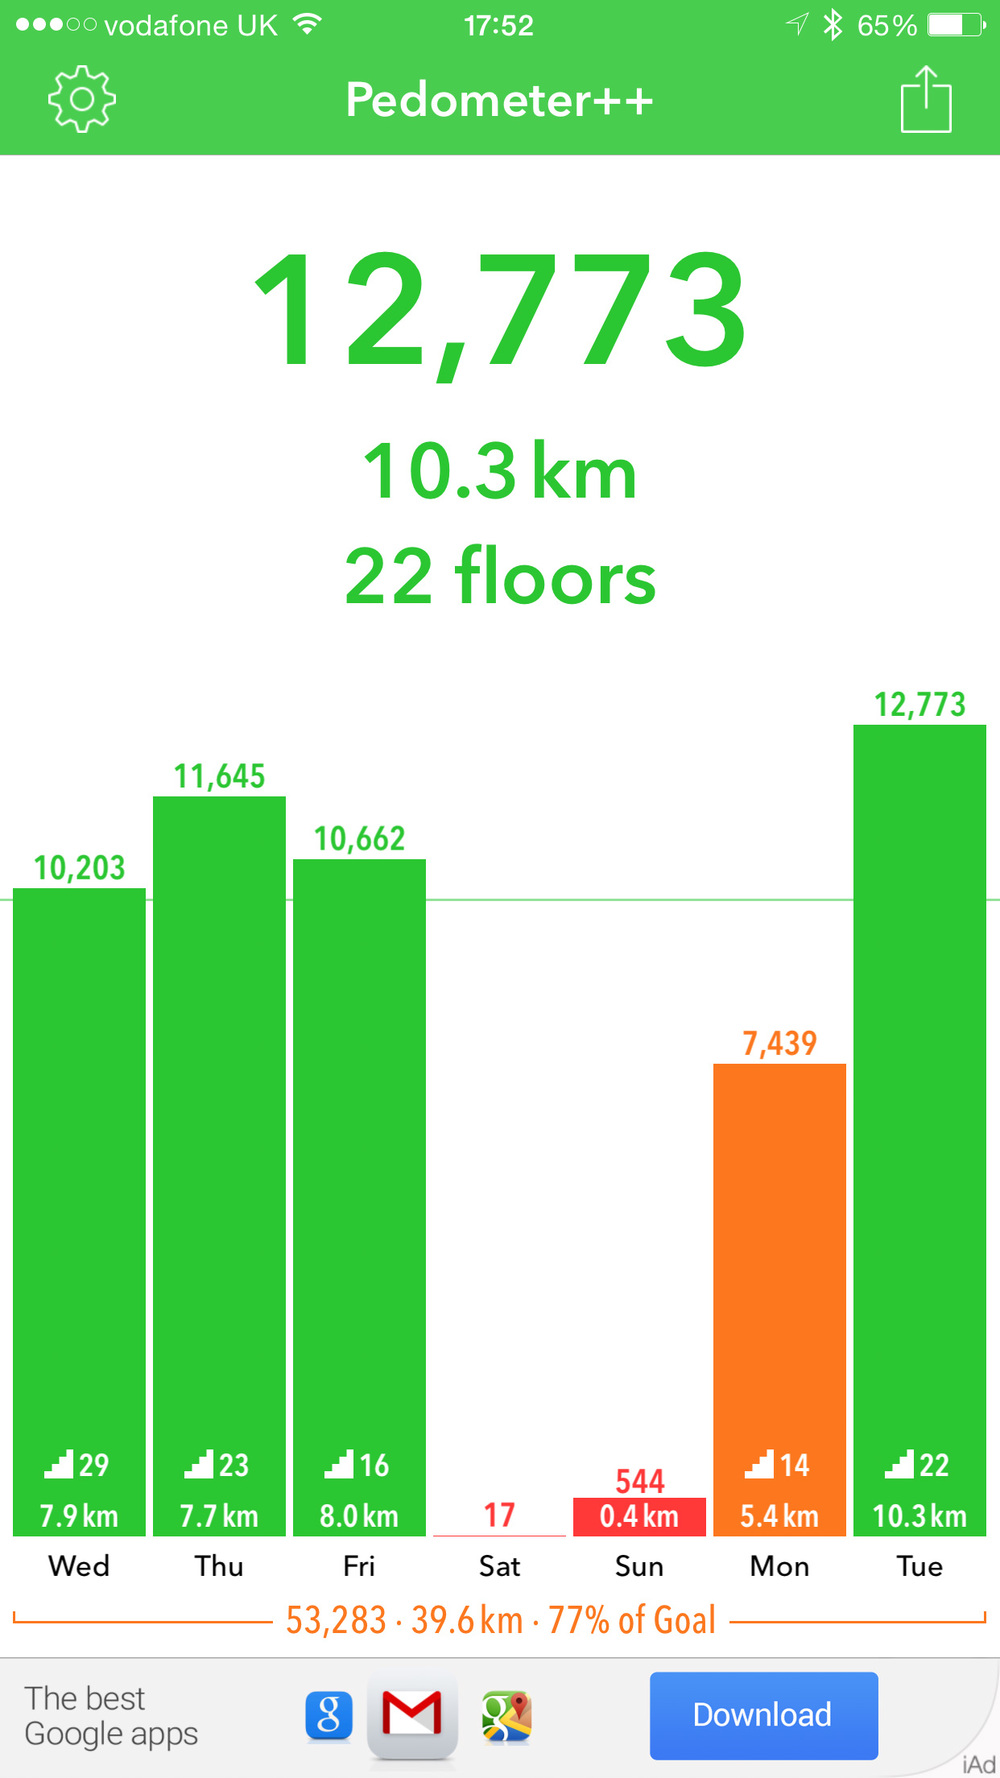 Pedometer++ gives an encouraging view of your achievements. Last weekend the iPhone stopped counting and needed rebooting , thus spoiling my perfect graph